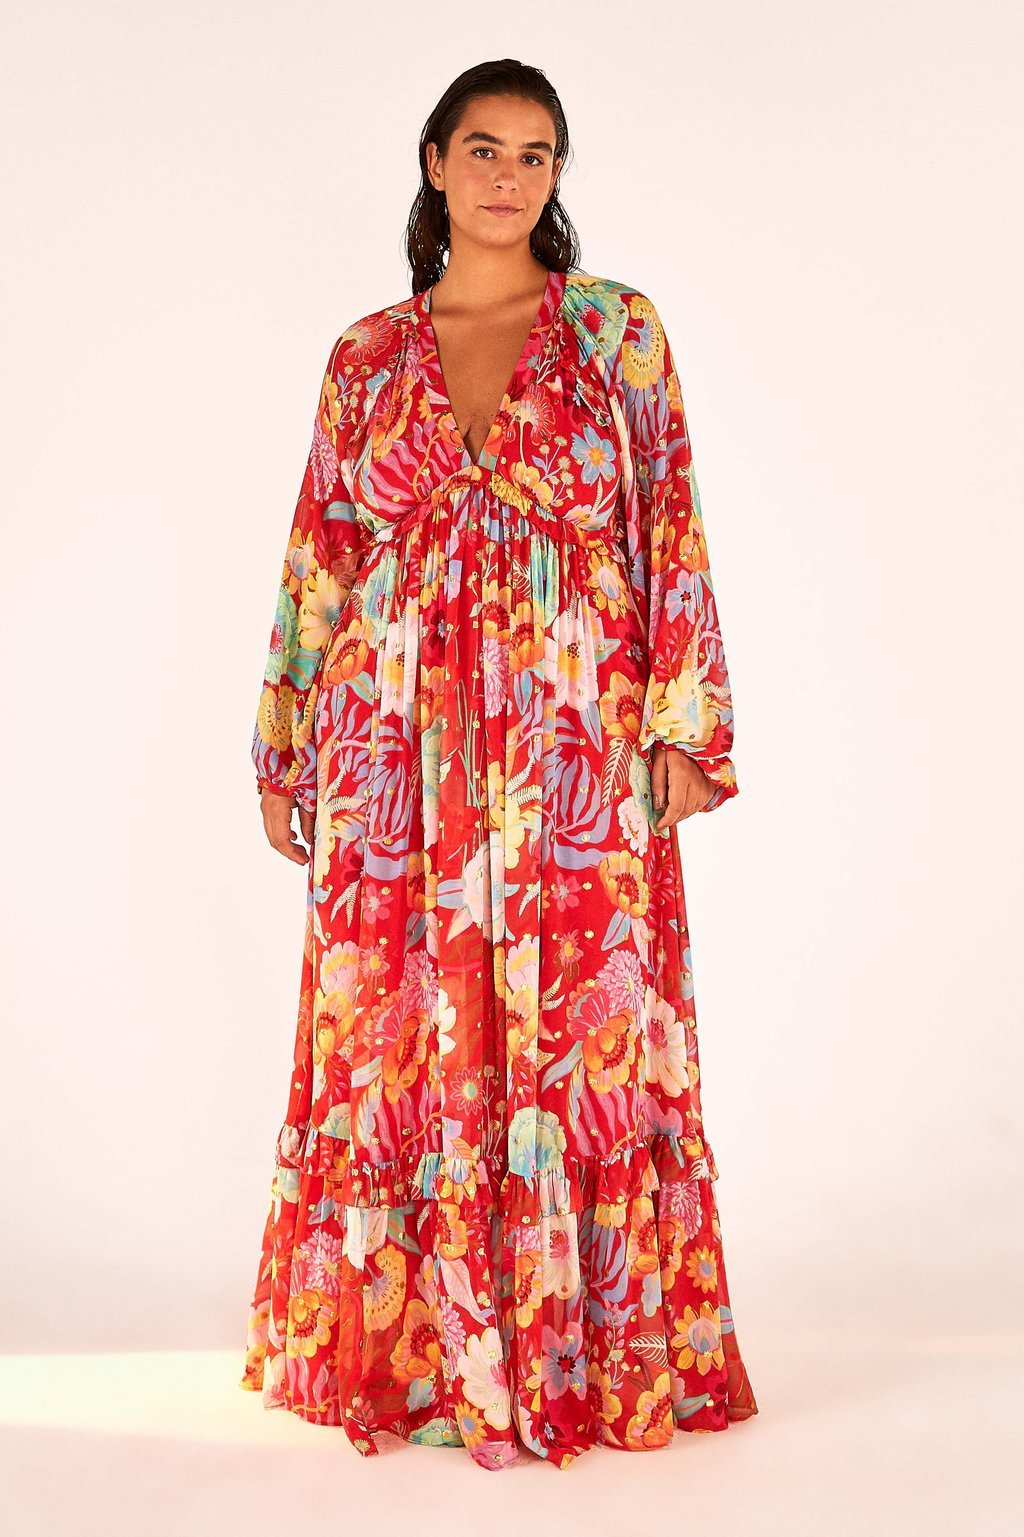 Load image into Gallery viewer, Hudson Floral Maxi Dress | Farm Rio - Women's Clothing